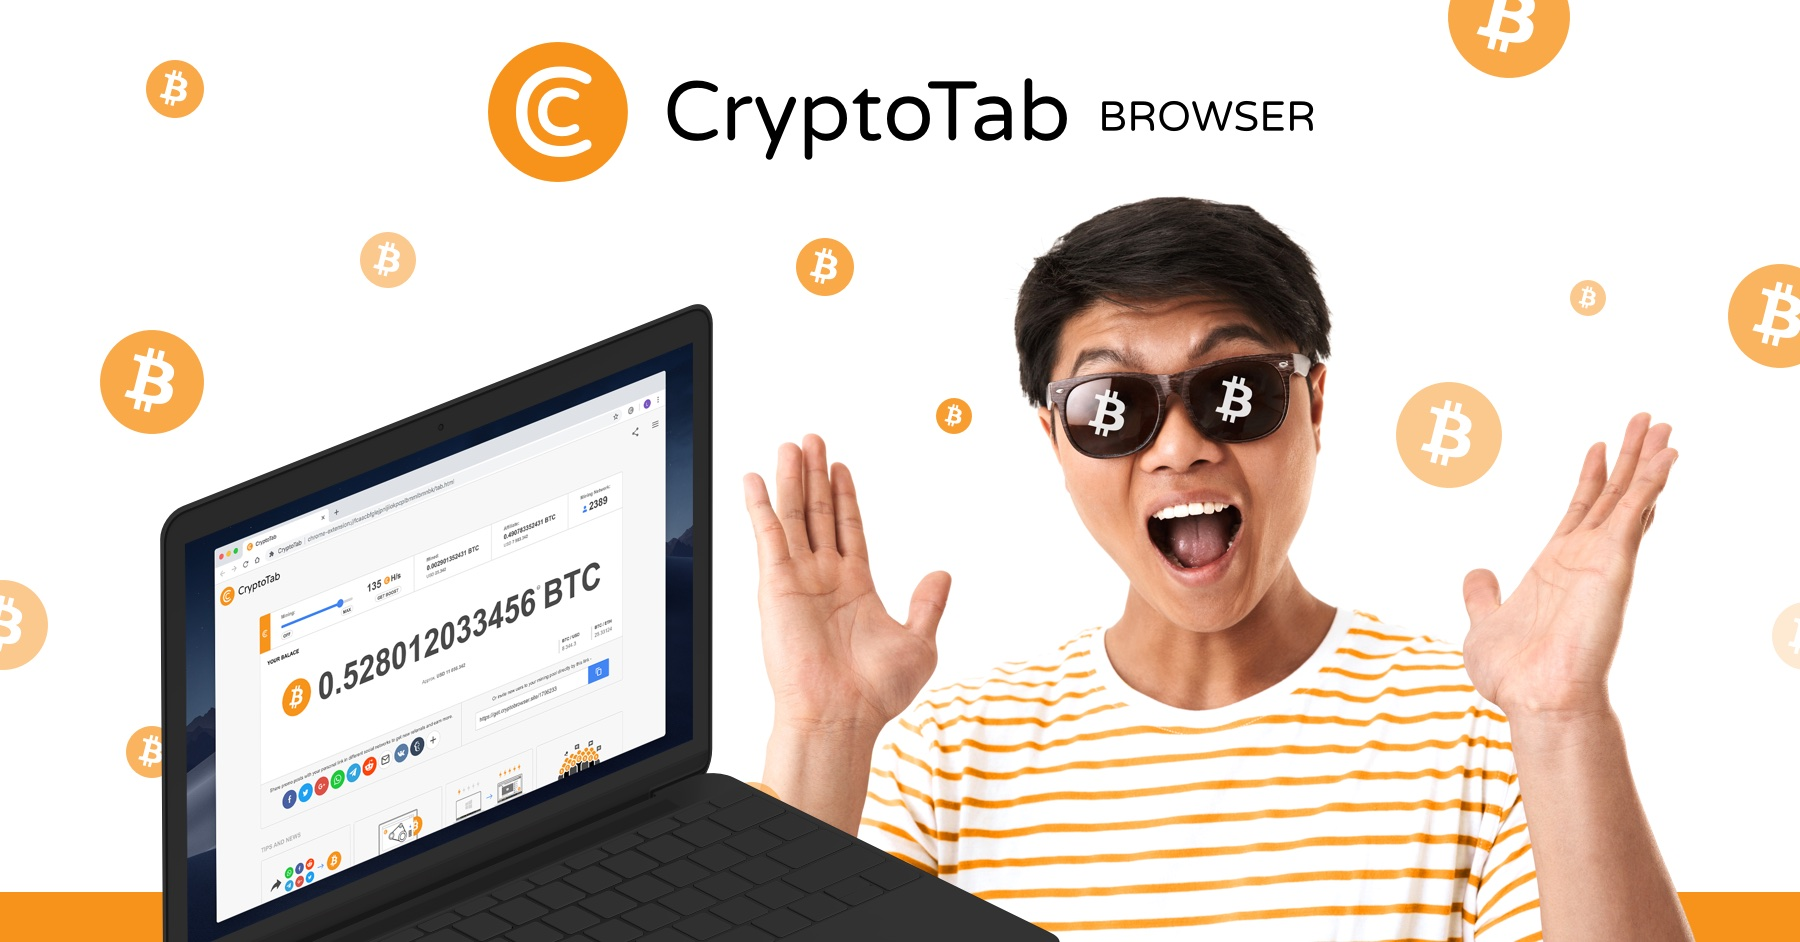 get.cryptobrowser.site